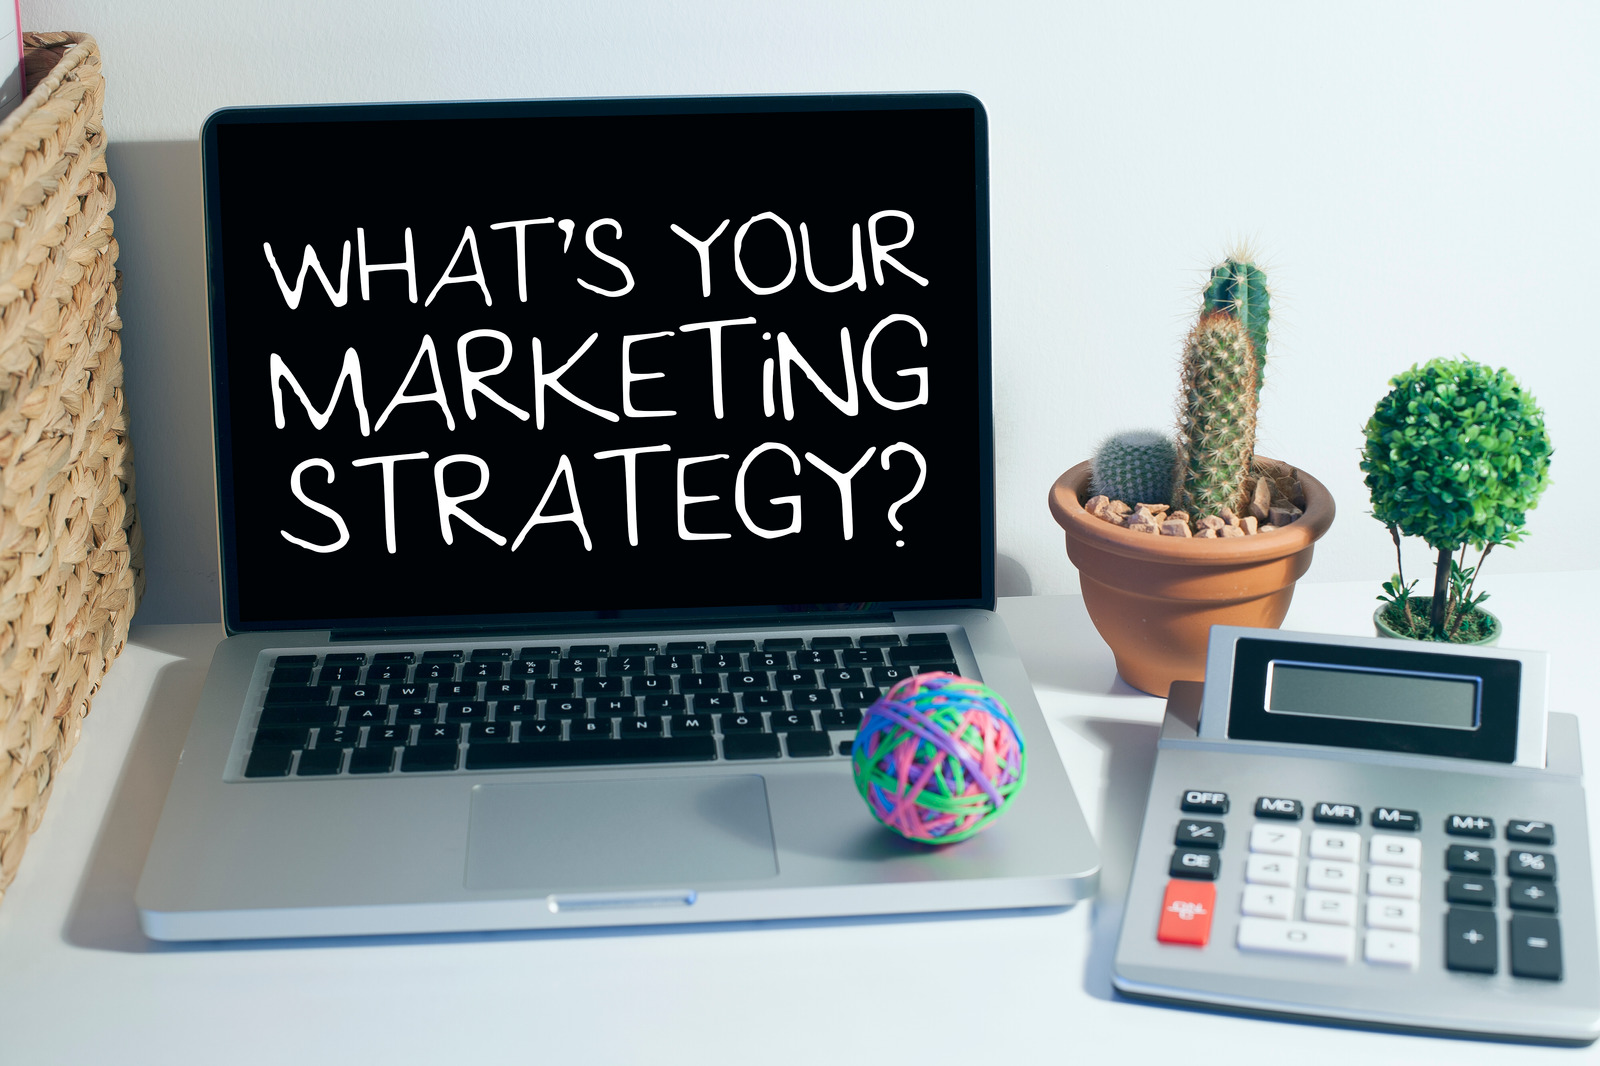 About Your Business Marketer